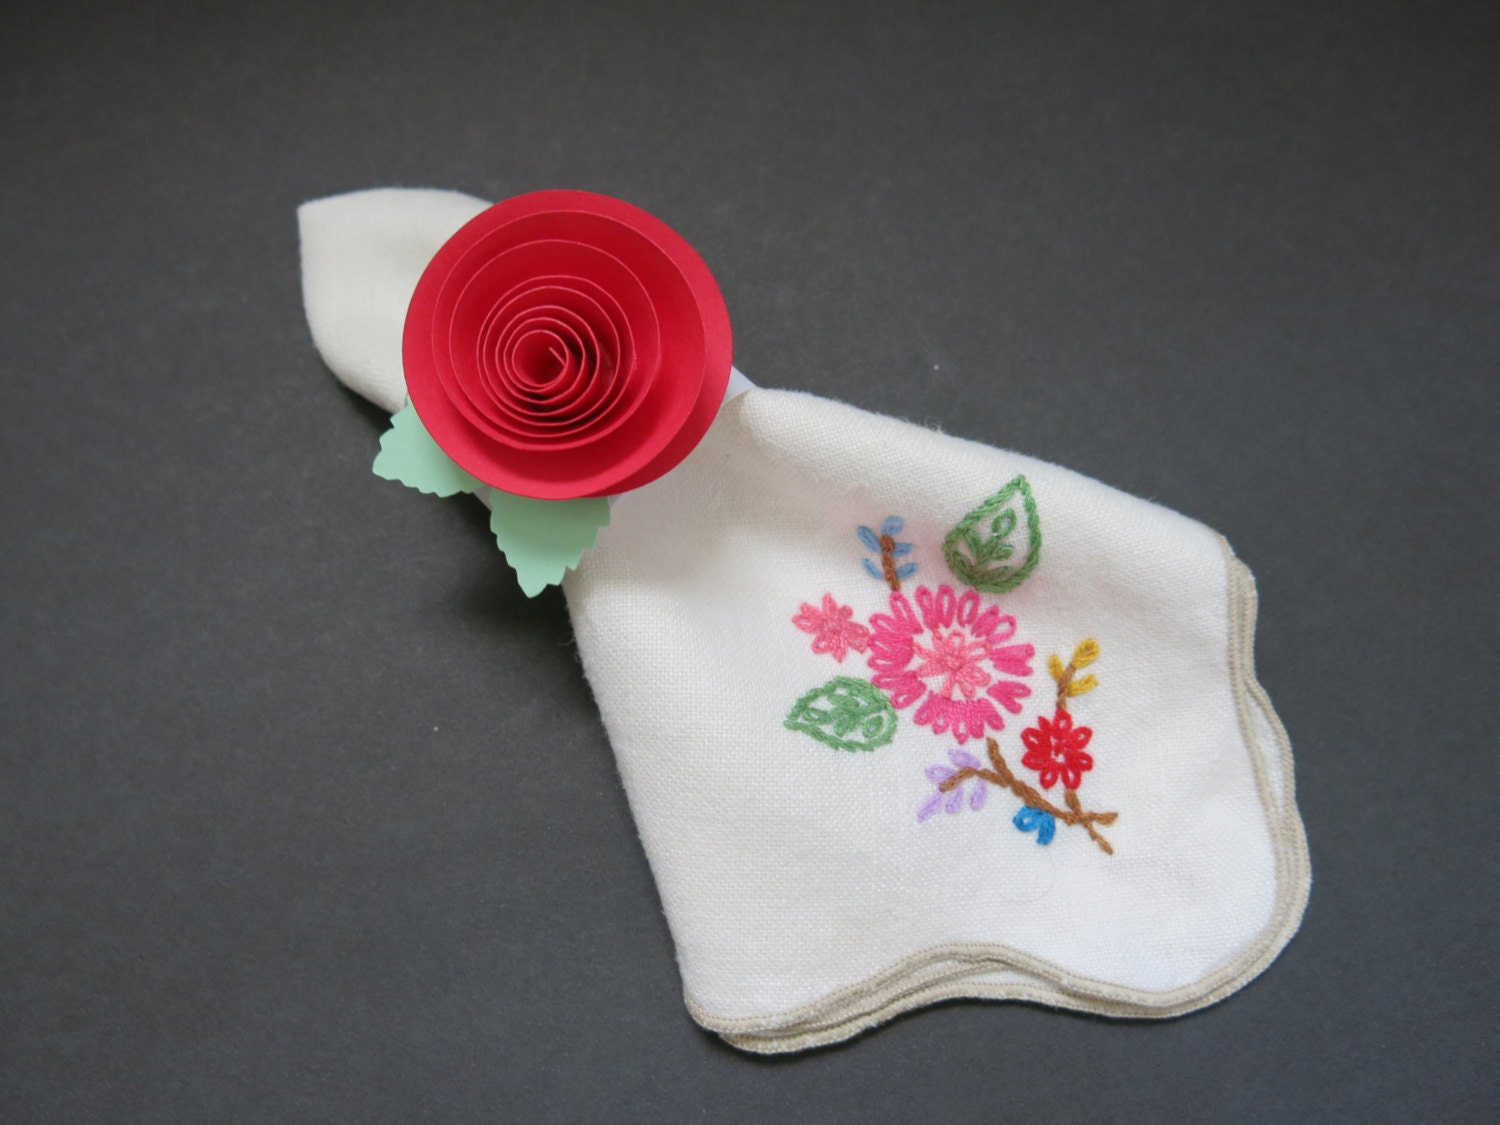 67 Best Images About Napkin Rings Menu Cards On: Red Roses Napkin Rings Set Of 10 Paper Flower Table